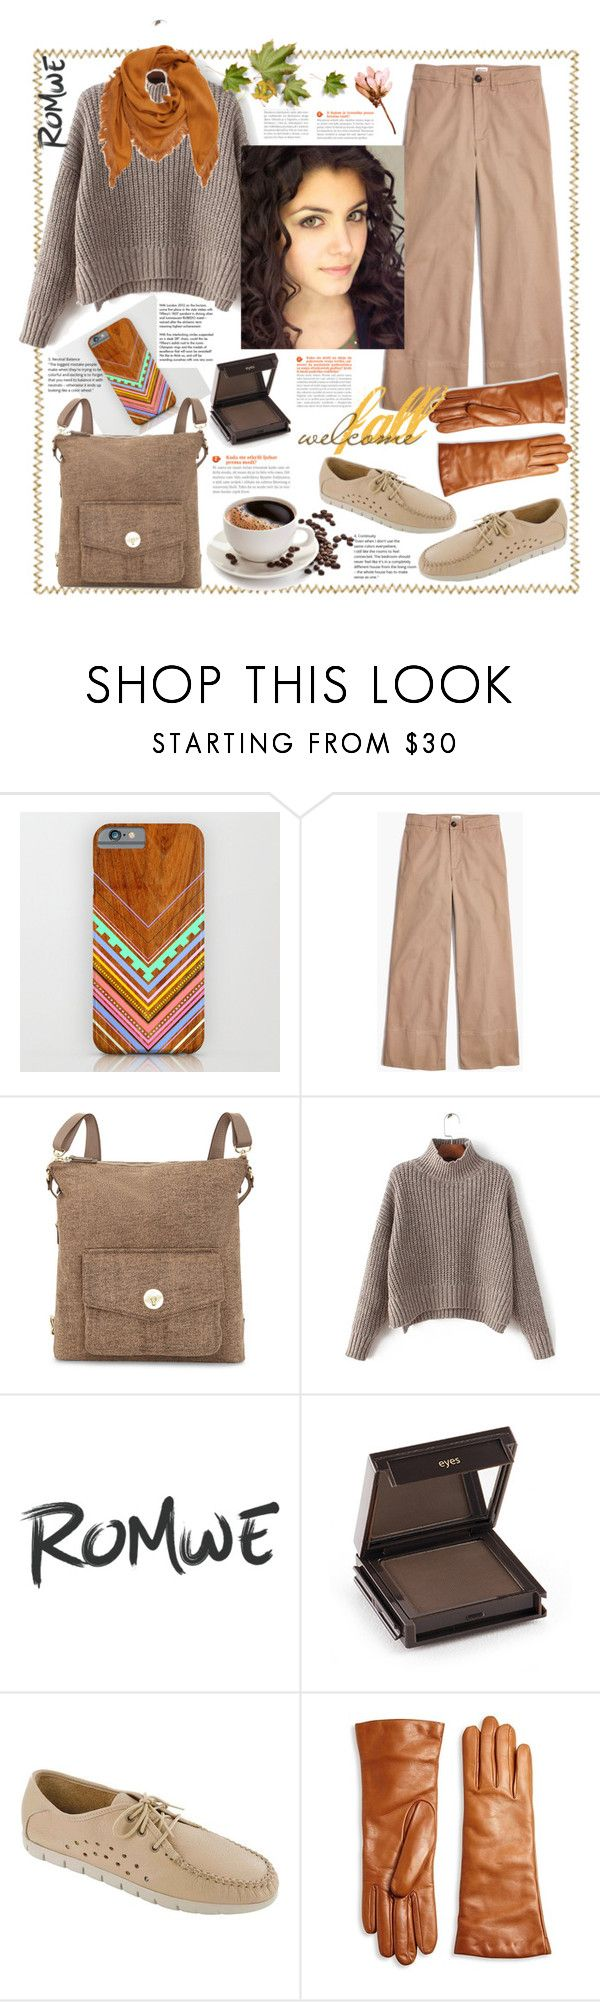 """Romwe"" by natalyapril1976 on Polyvore featuring Mode, Madewell, Kipling, Jouer, S.A.S., Saks Fifth Avenue Collection, David & Young und Tiffany & Co."